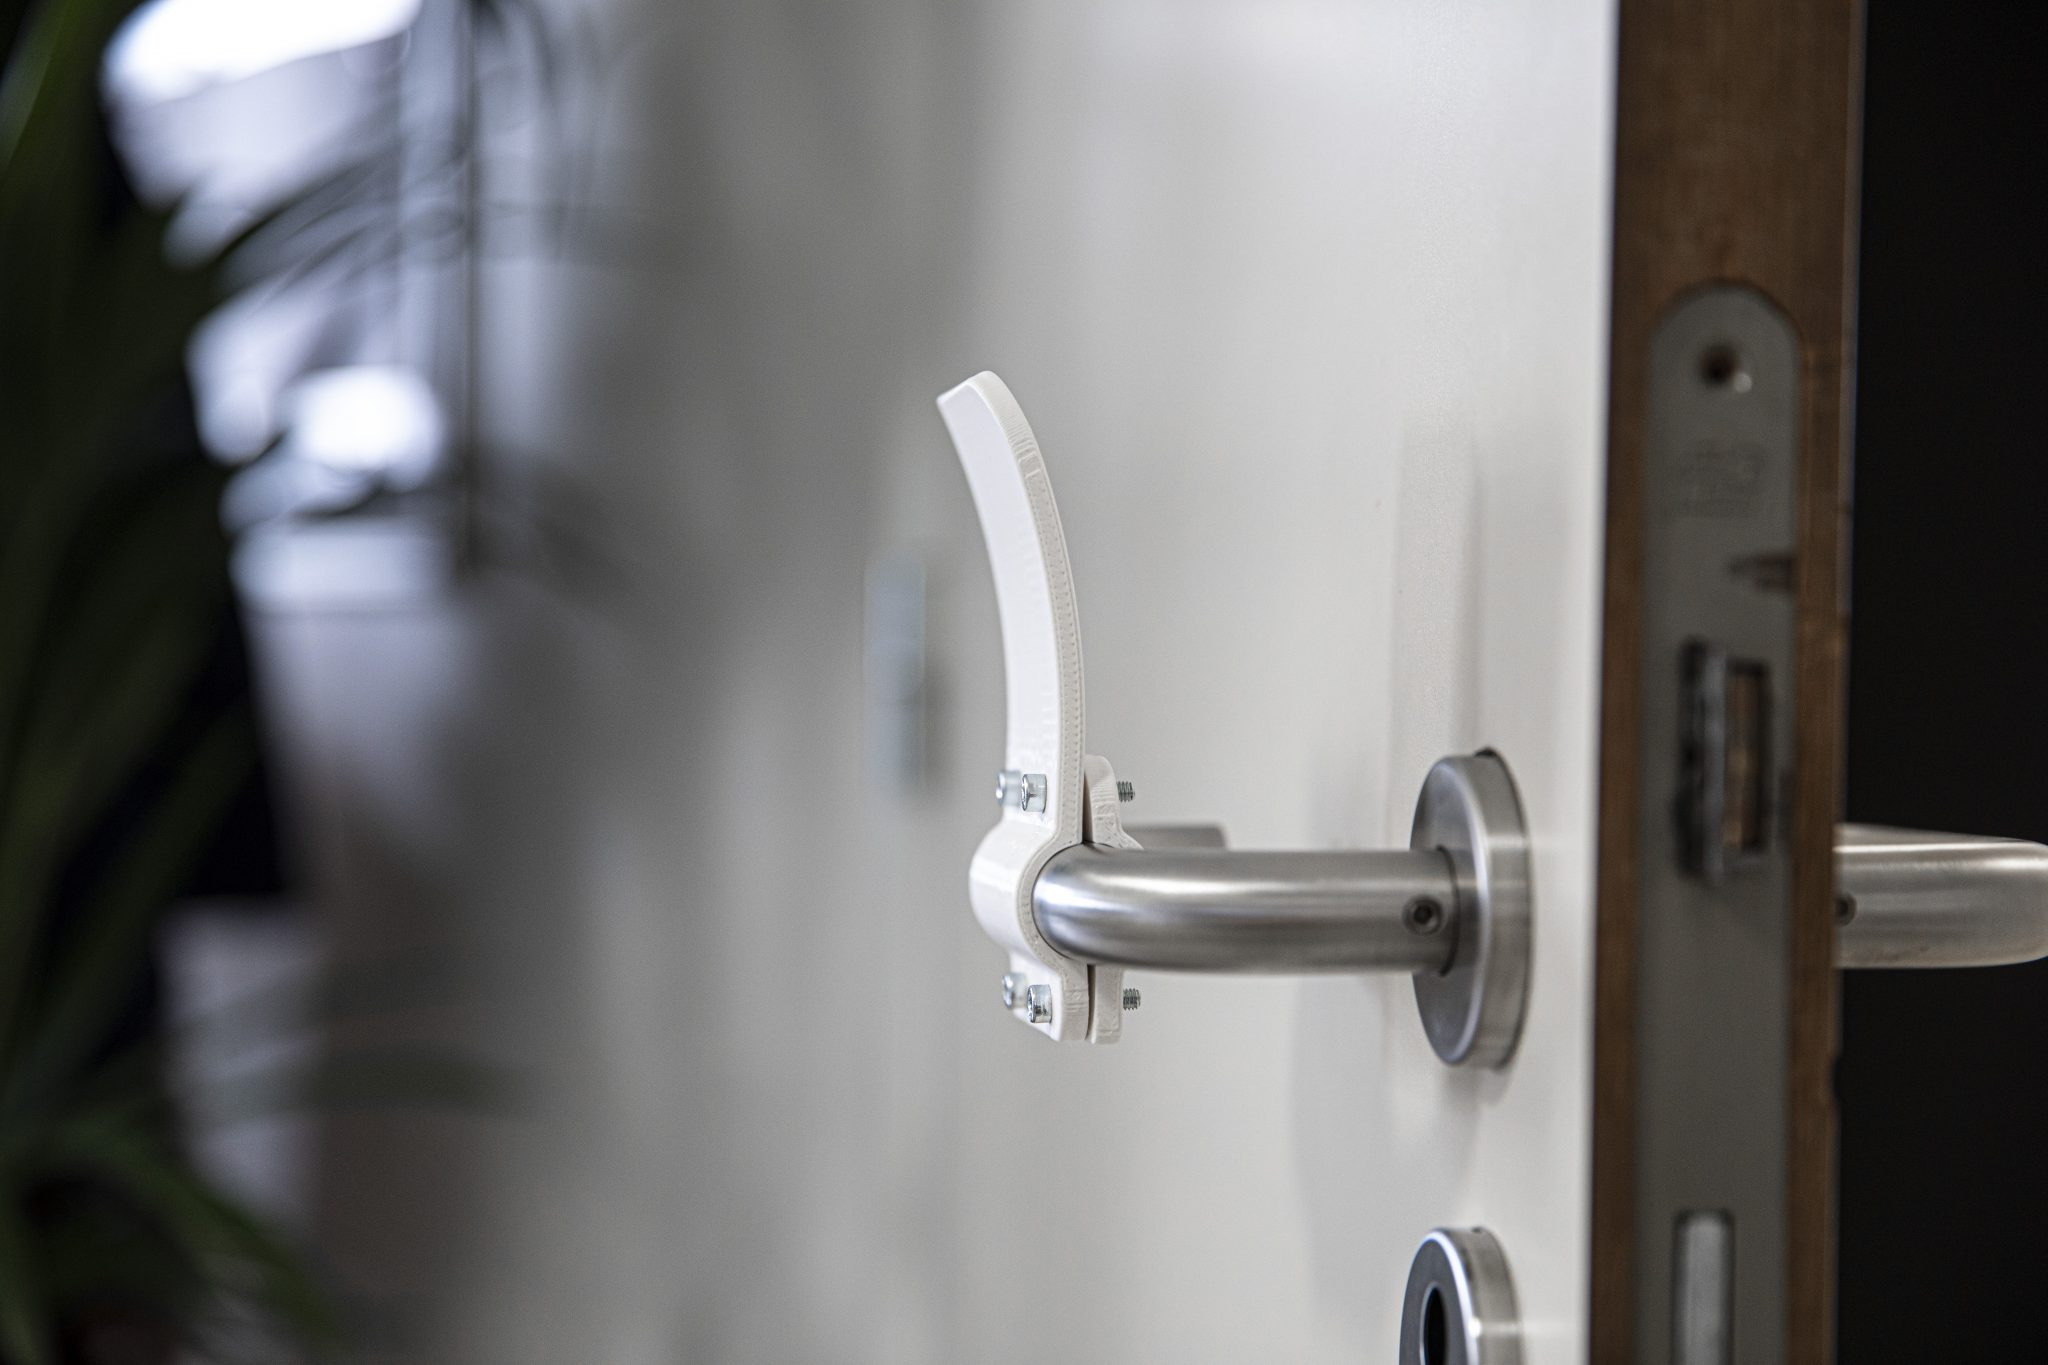 The hands free door opener. Photo via Materialise.